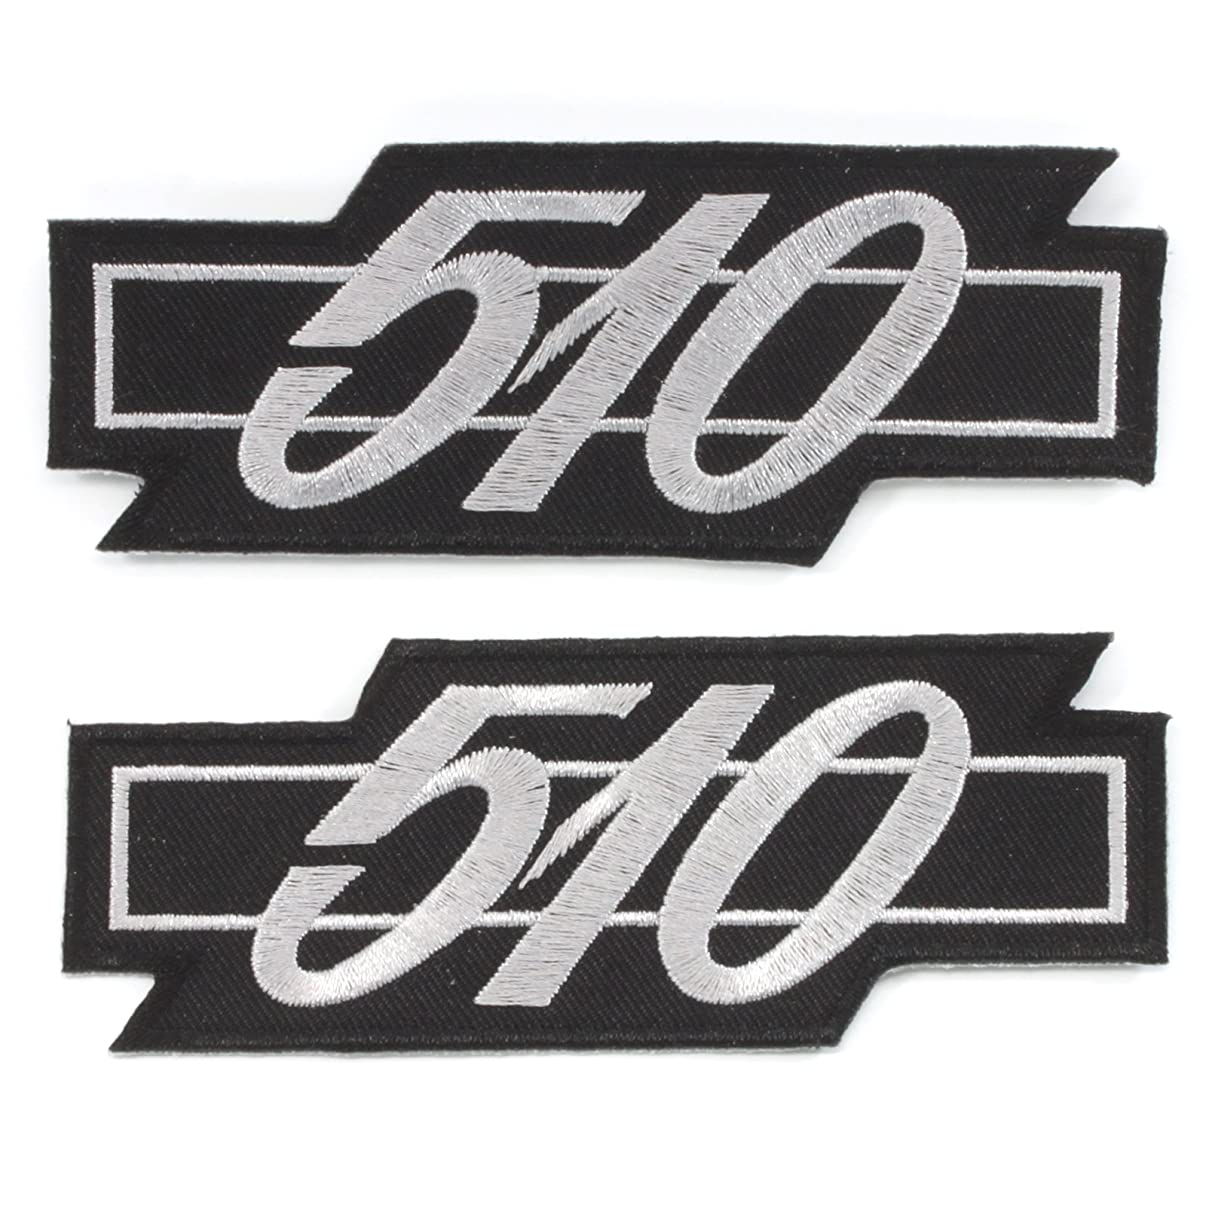 Rotary13B1 Datsun 510 Patches - 2 Pieces - Black